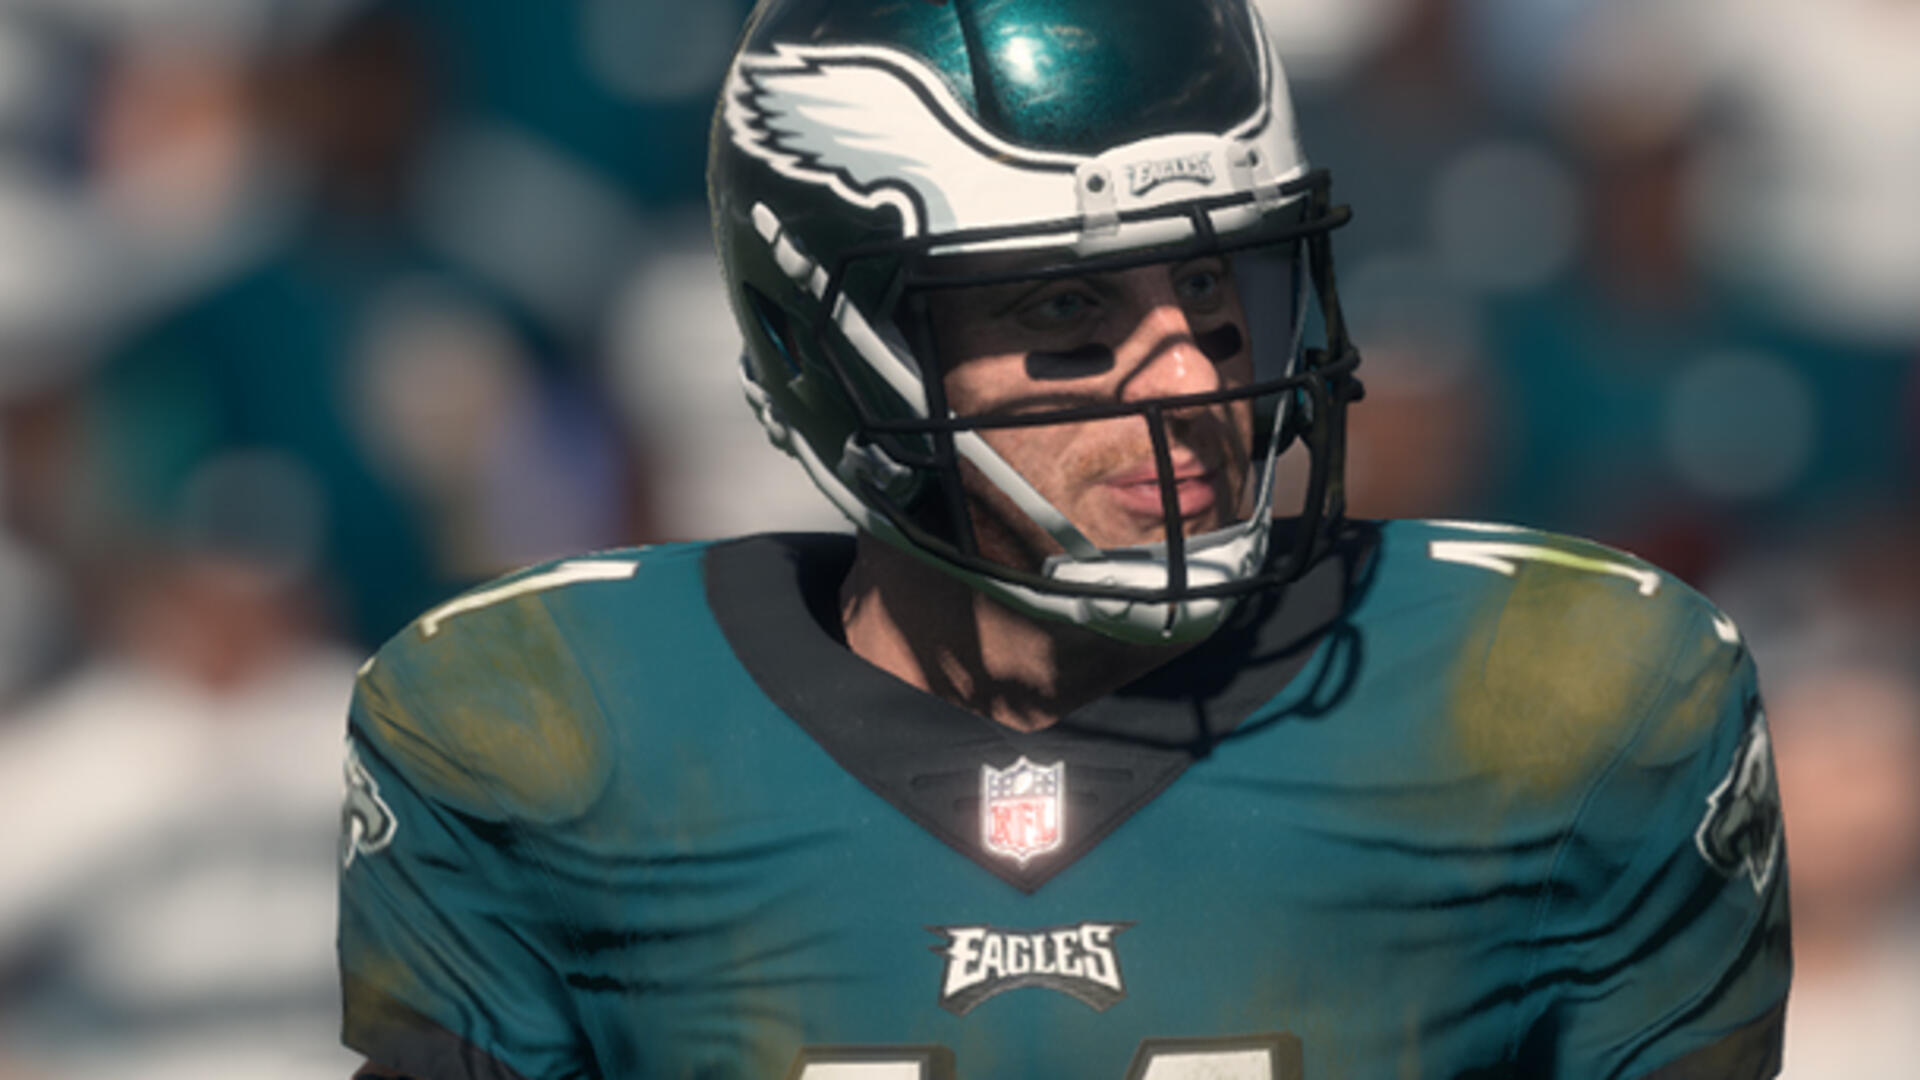 Madden 19 Ratings - Madden 19's Best Players, All Madden 19